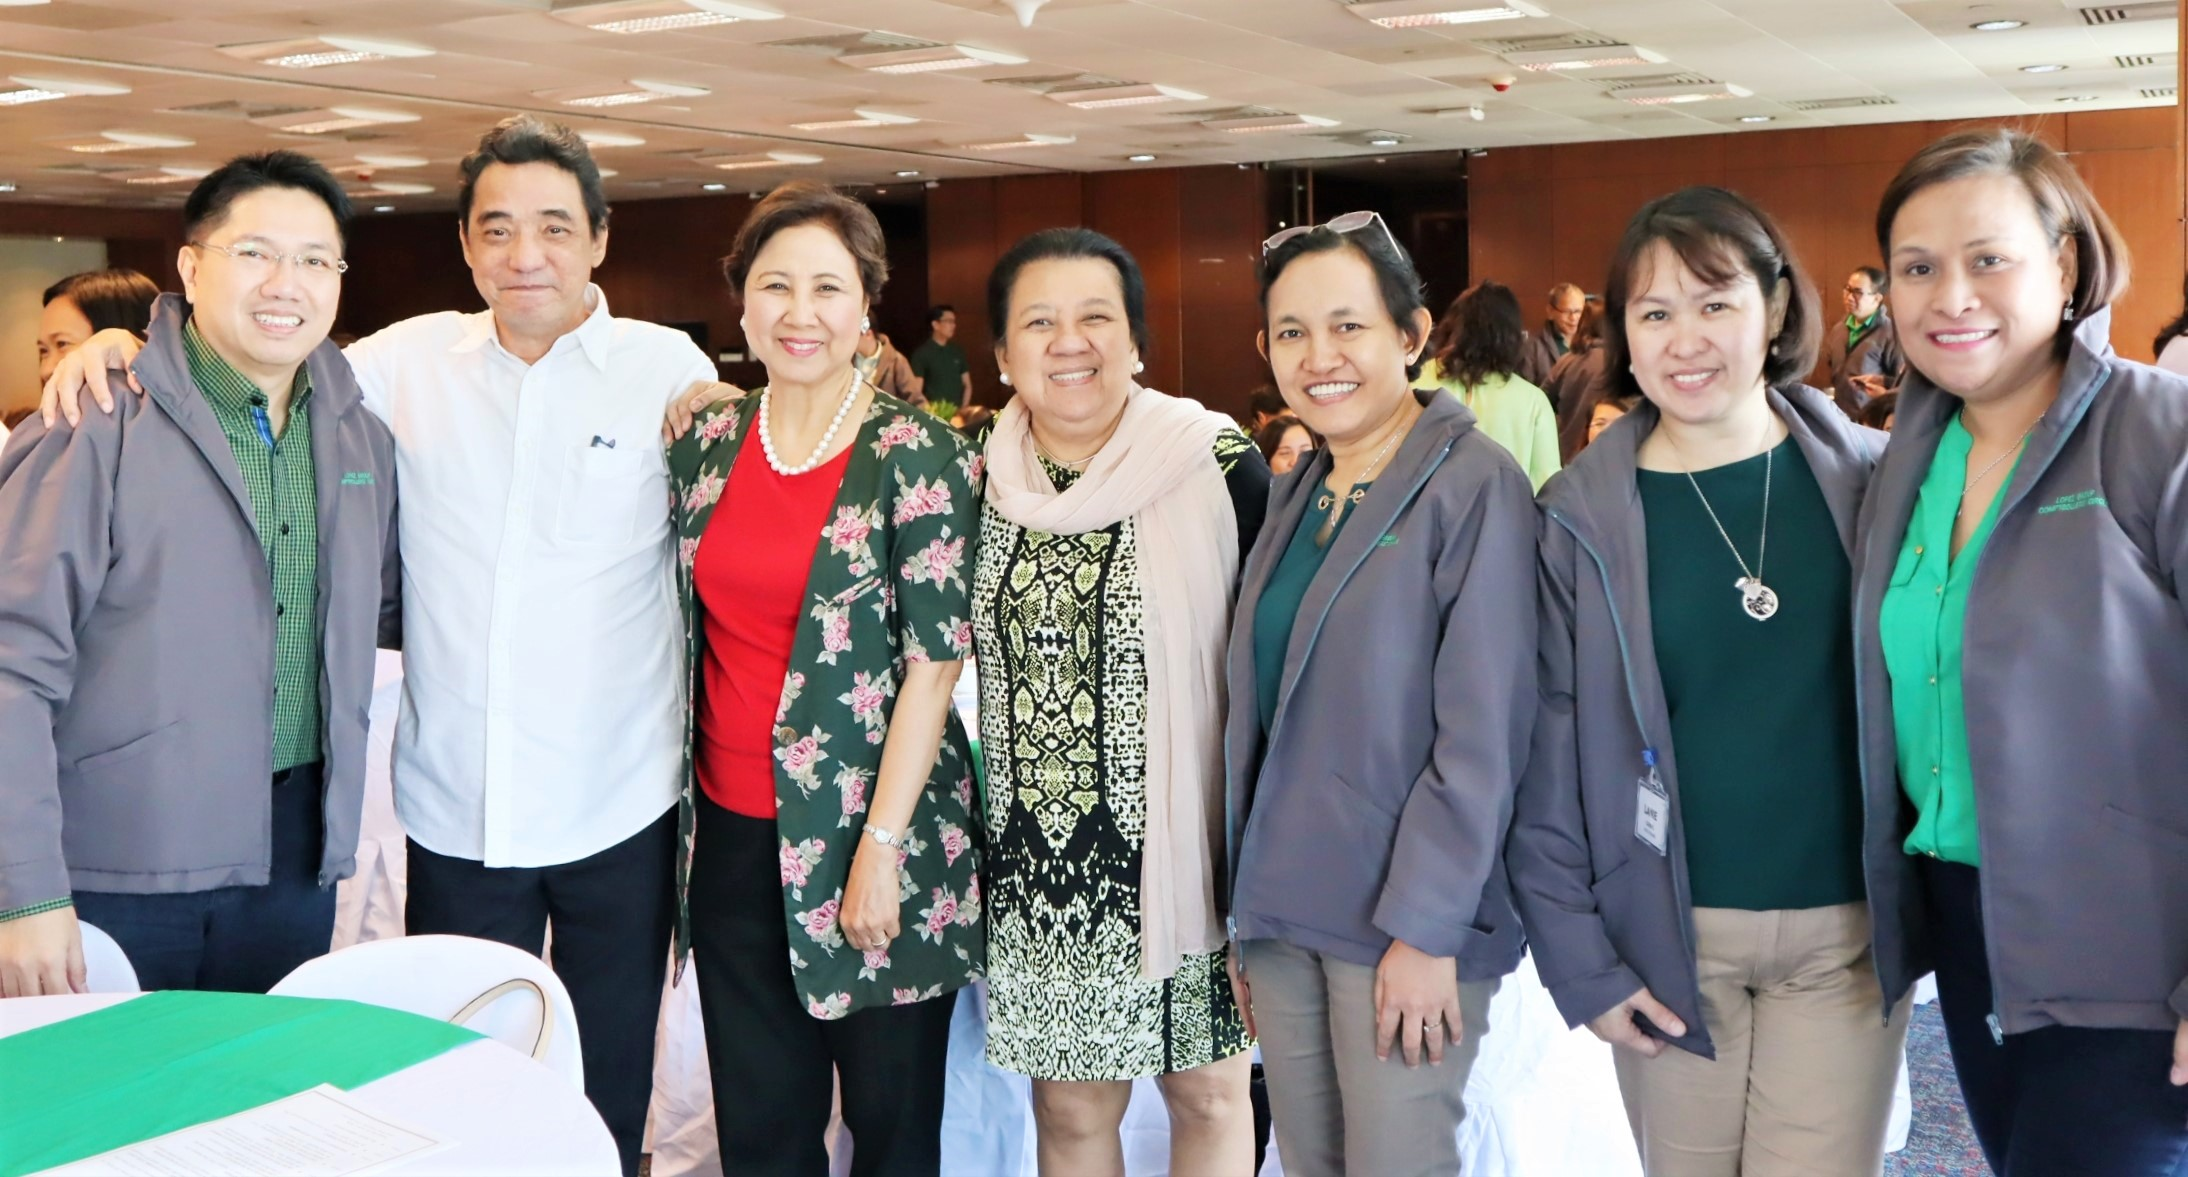 With former Lopez Group comptrollers Pearl Catahan and Ramon Pagdagdagan and former executive officer Marvi Marcelino